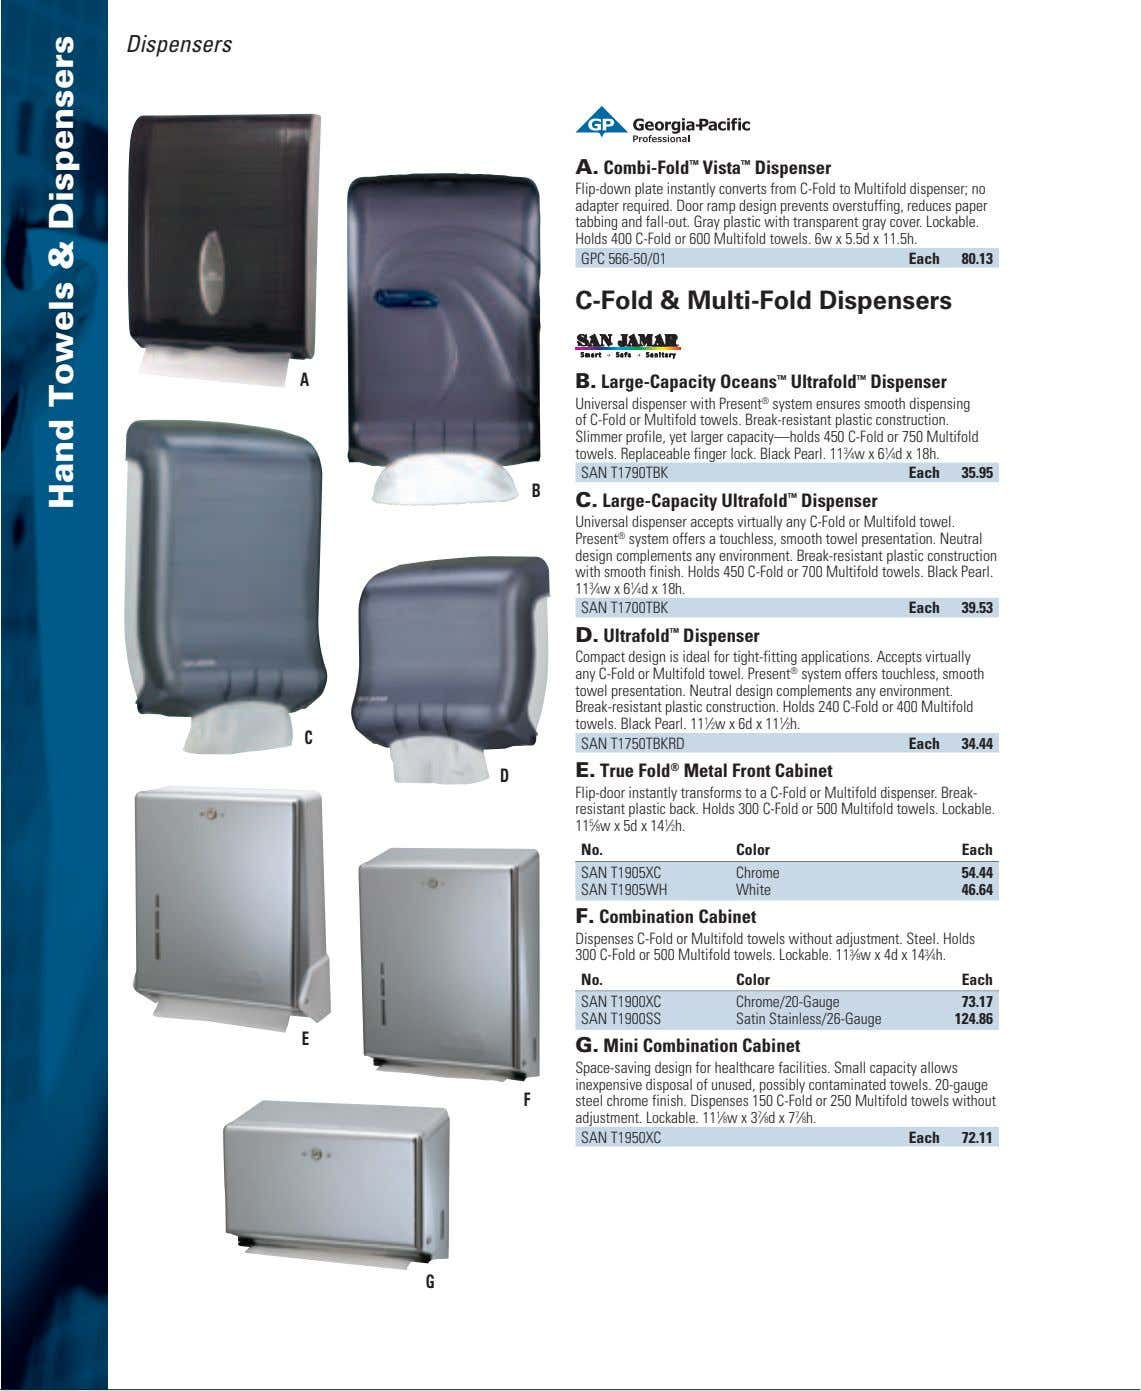 Dispensers A. Combi-Fold ™ Vista ™ Dispenser Flip-down plate instantly converts from C-Fold to Multifold